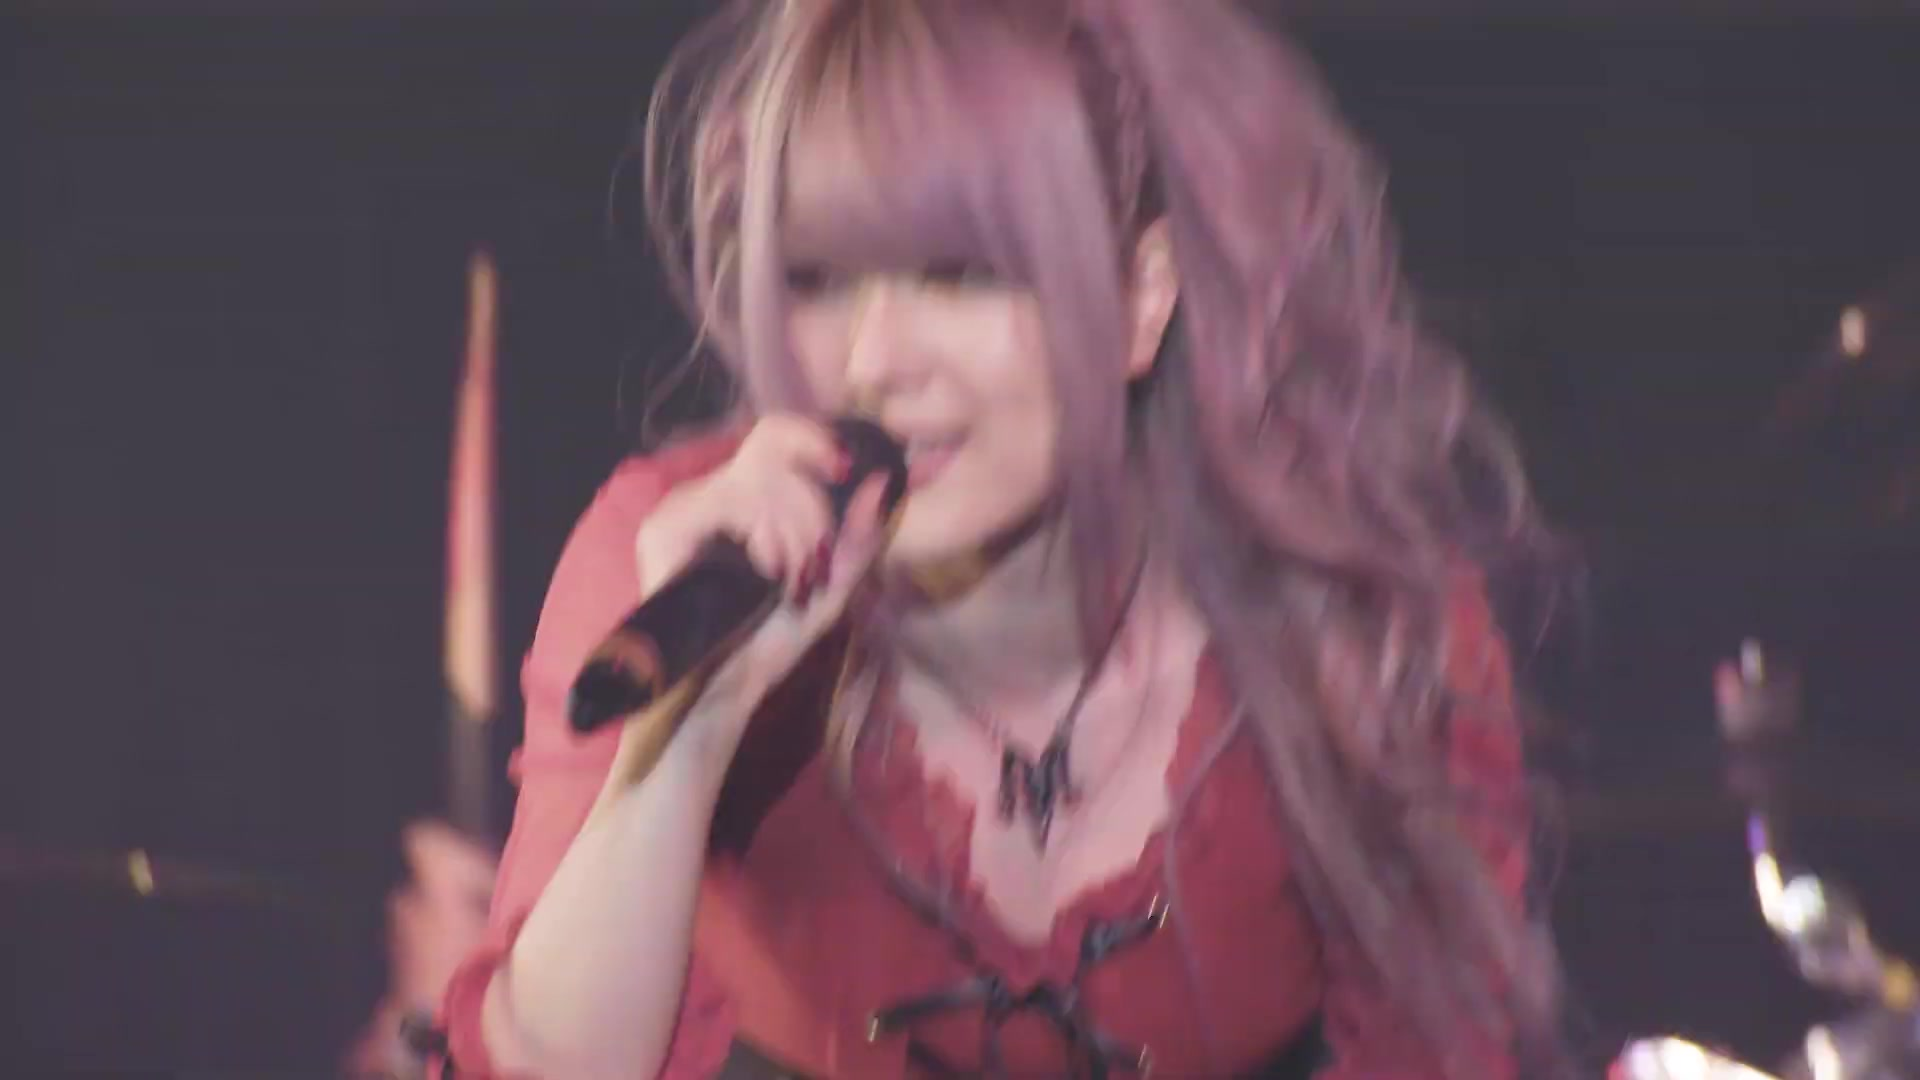 [ Official Live Video ] Unlucky Morpheus - 「Angreifer」